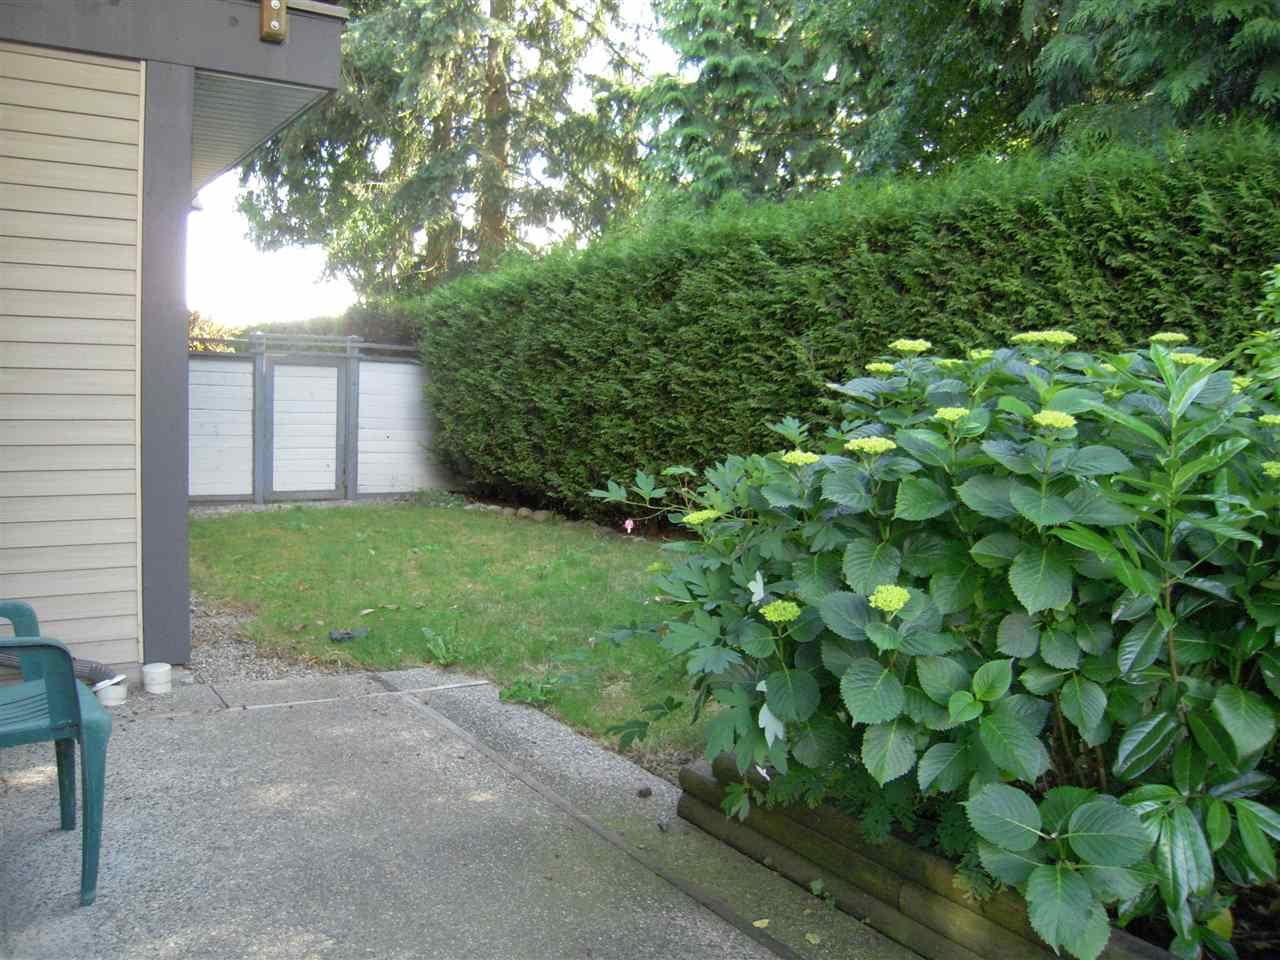 Photo 4: Photos: 43 689 PARK Road in Gibsons: Gibsons & Area Condo for sale (Sunshine Coast)  : MLS® # R2081854